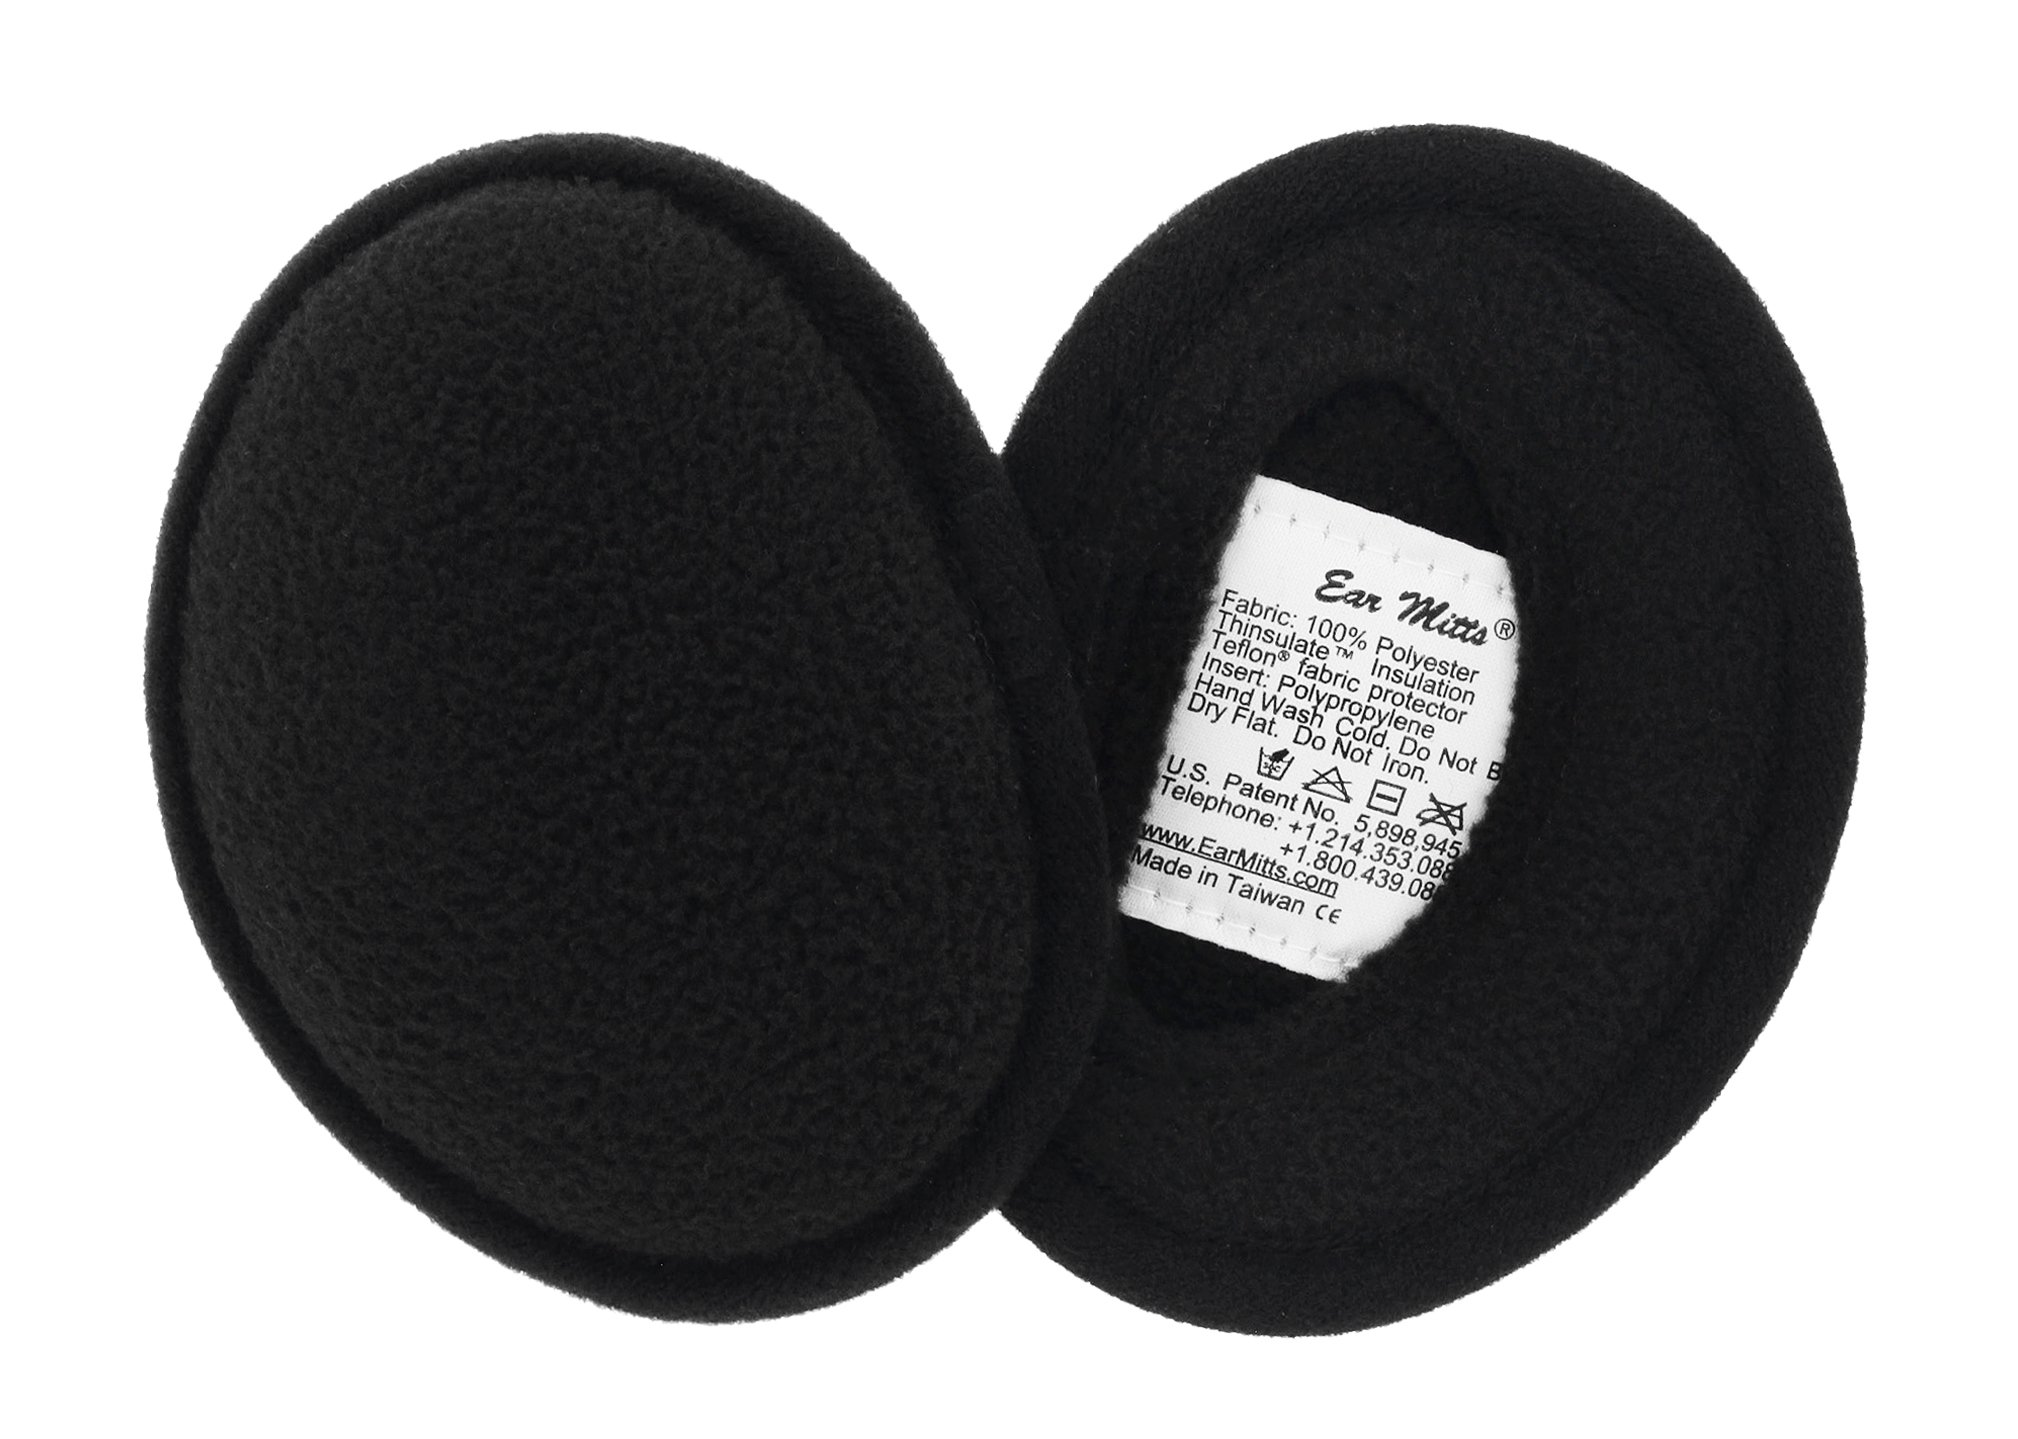 Ear Mitts Bandless Ear Muffs For Men & Women, Black Fleece Ear Warmers, Regular